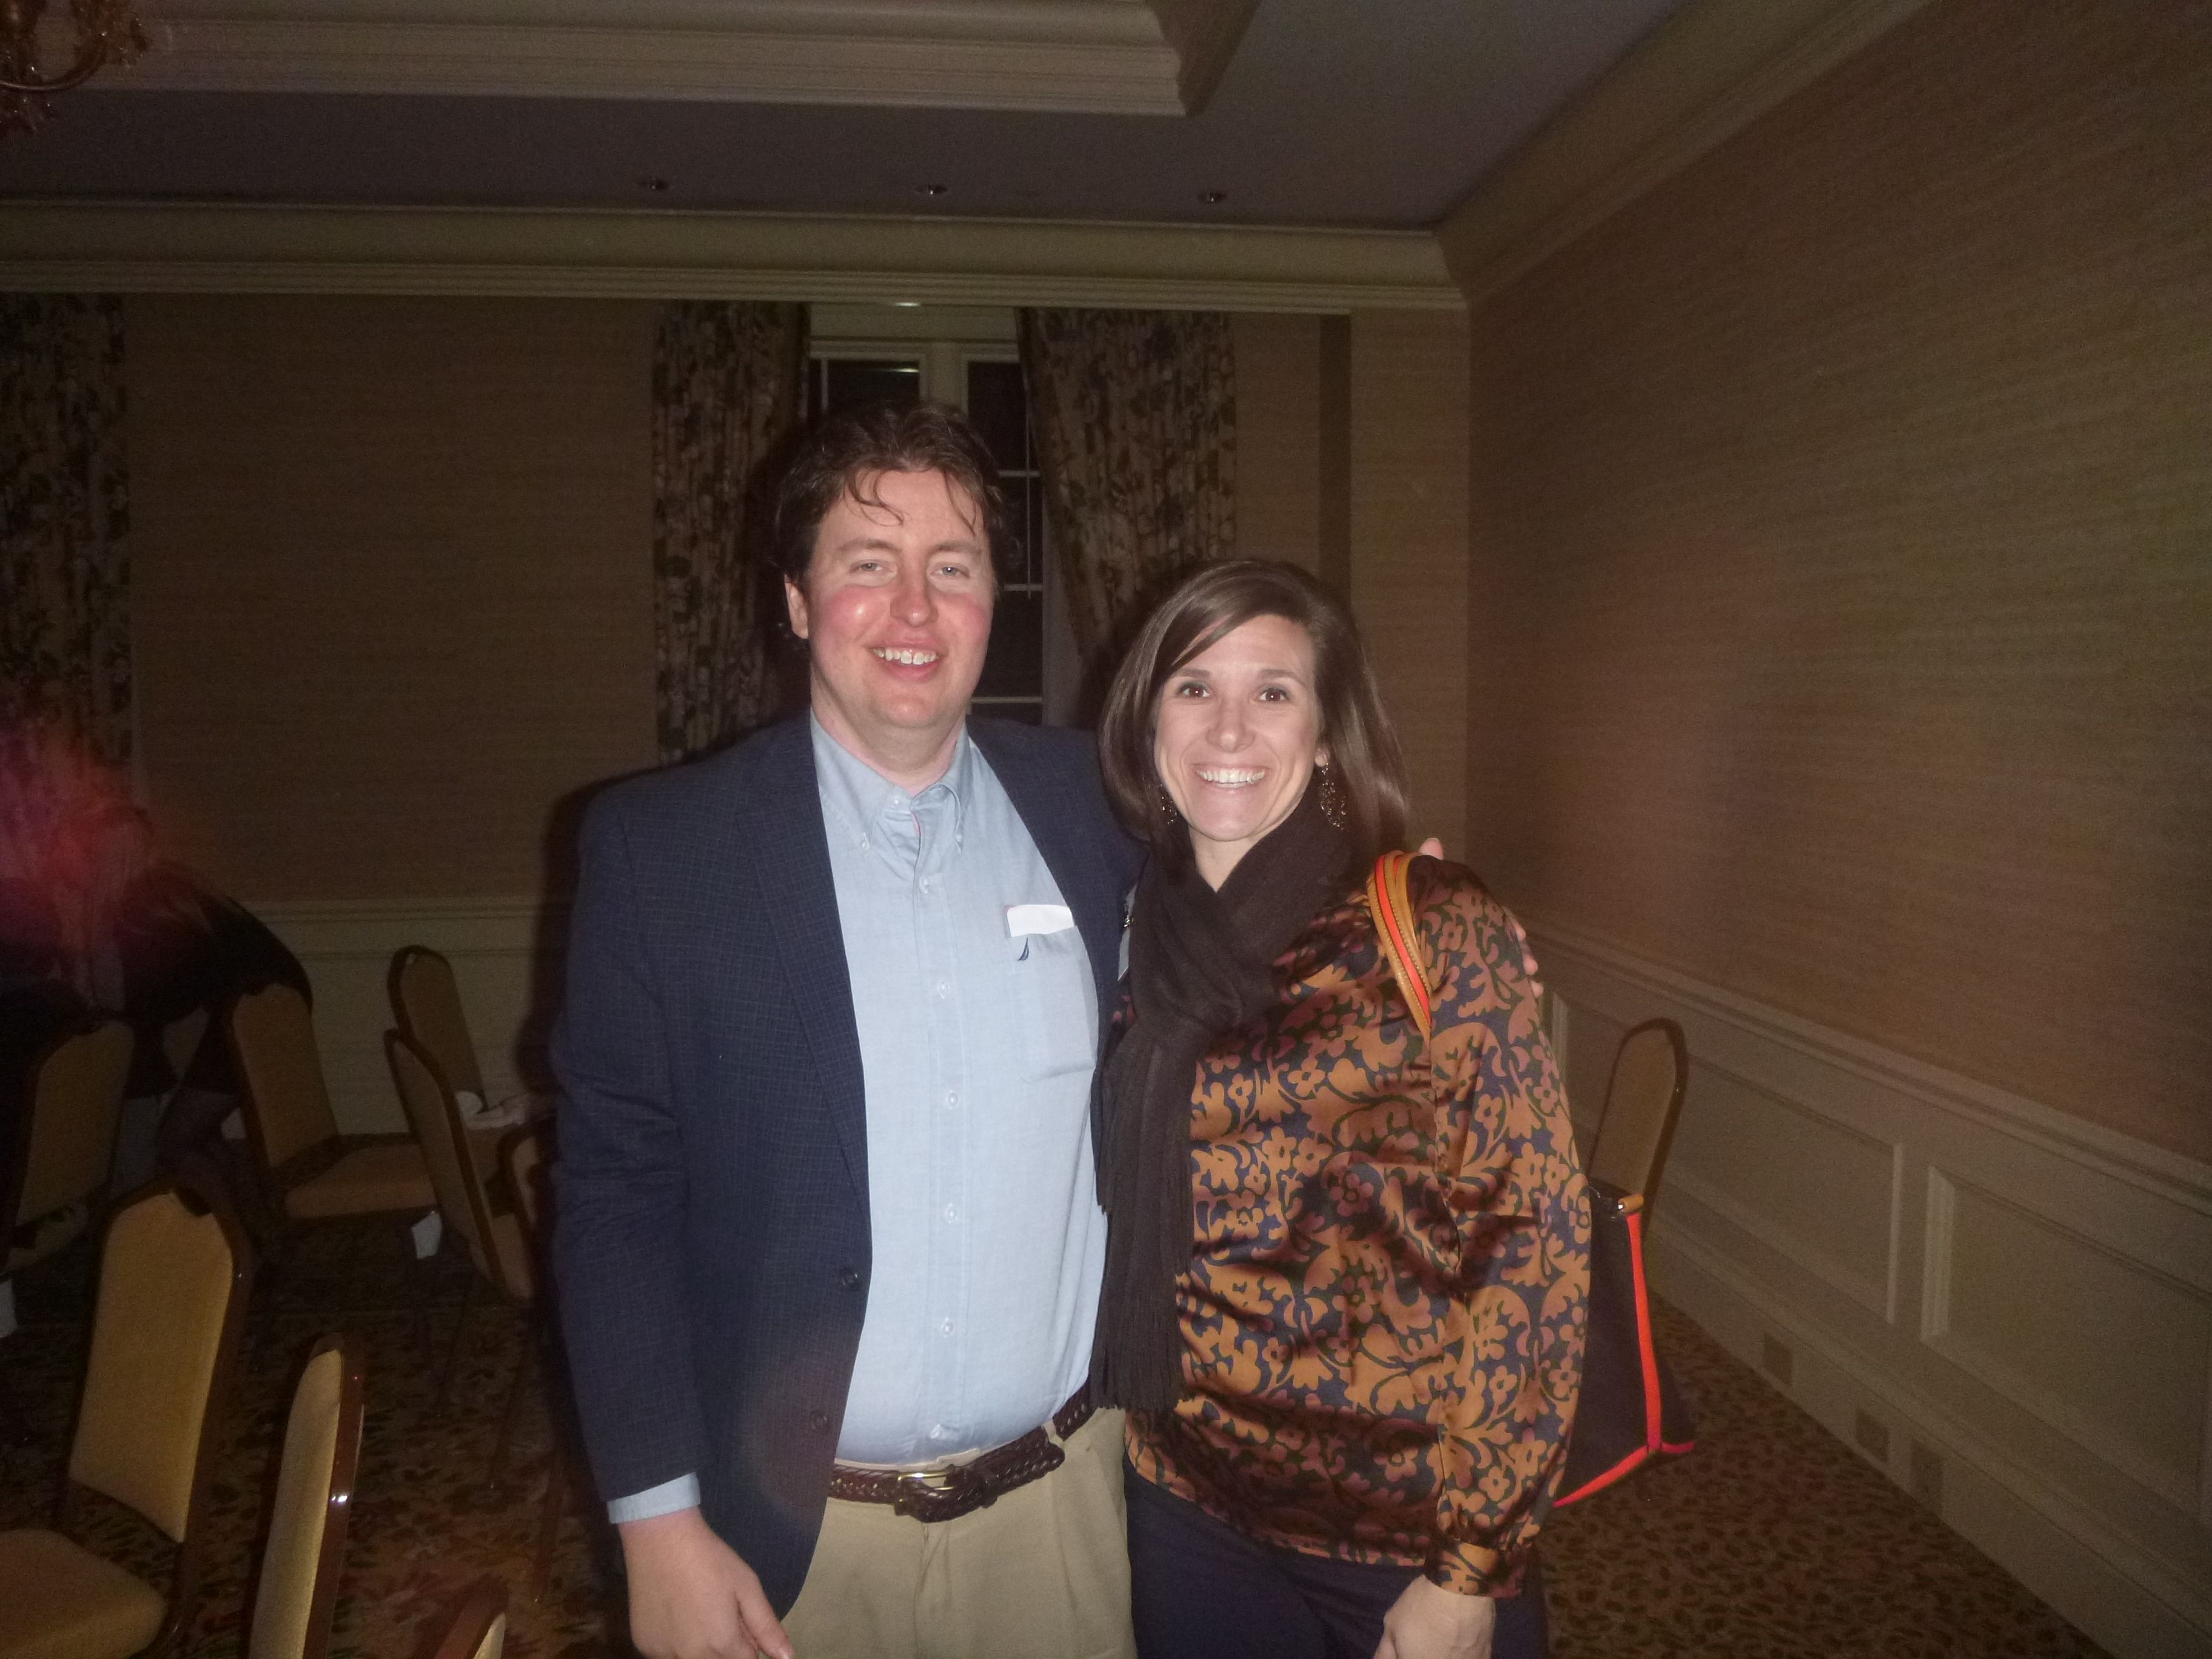 #Lawyer Evan Guthrie with Elizabeth Owen of Morton  Gettys at the South Carolina Bar Leadership Academy Dinner at the Sanctuary Middleton Room at the South Carolina Bar Convention in Kiawah Island, SC on Saturday January 25, 2014